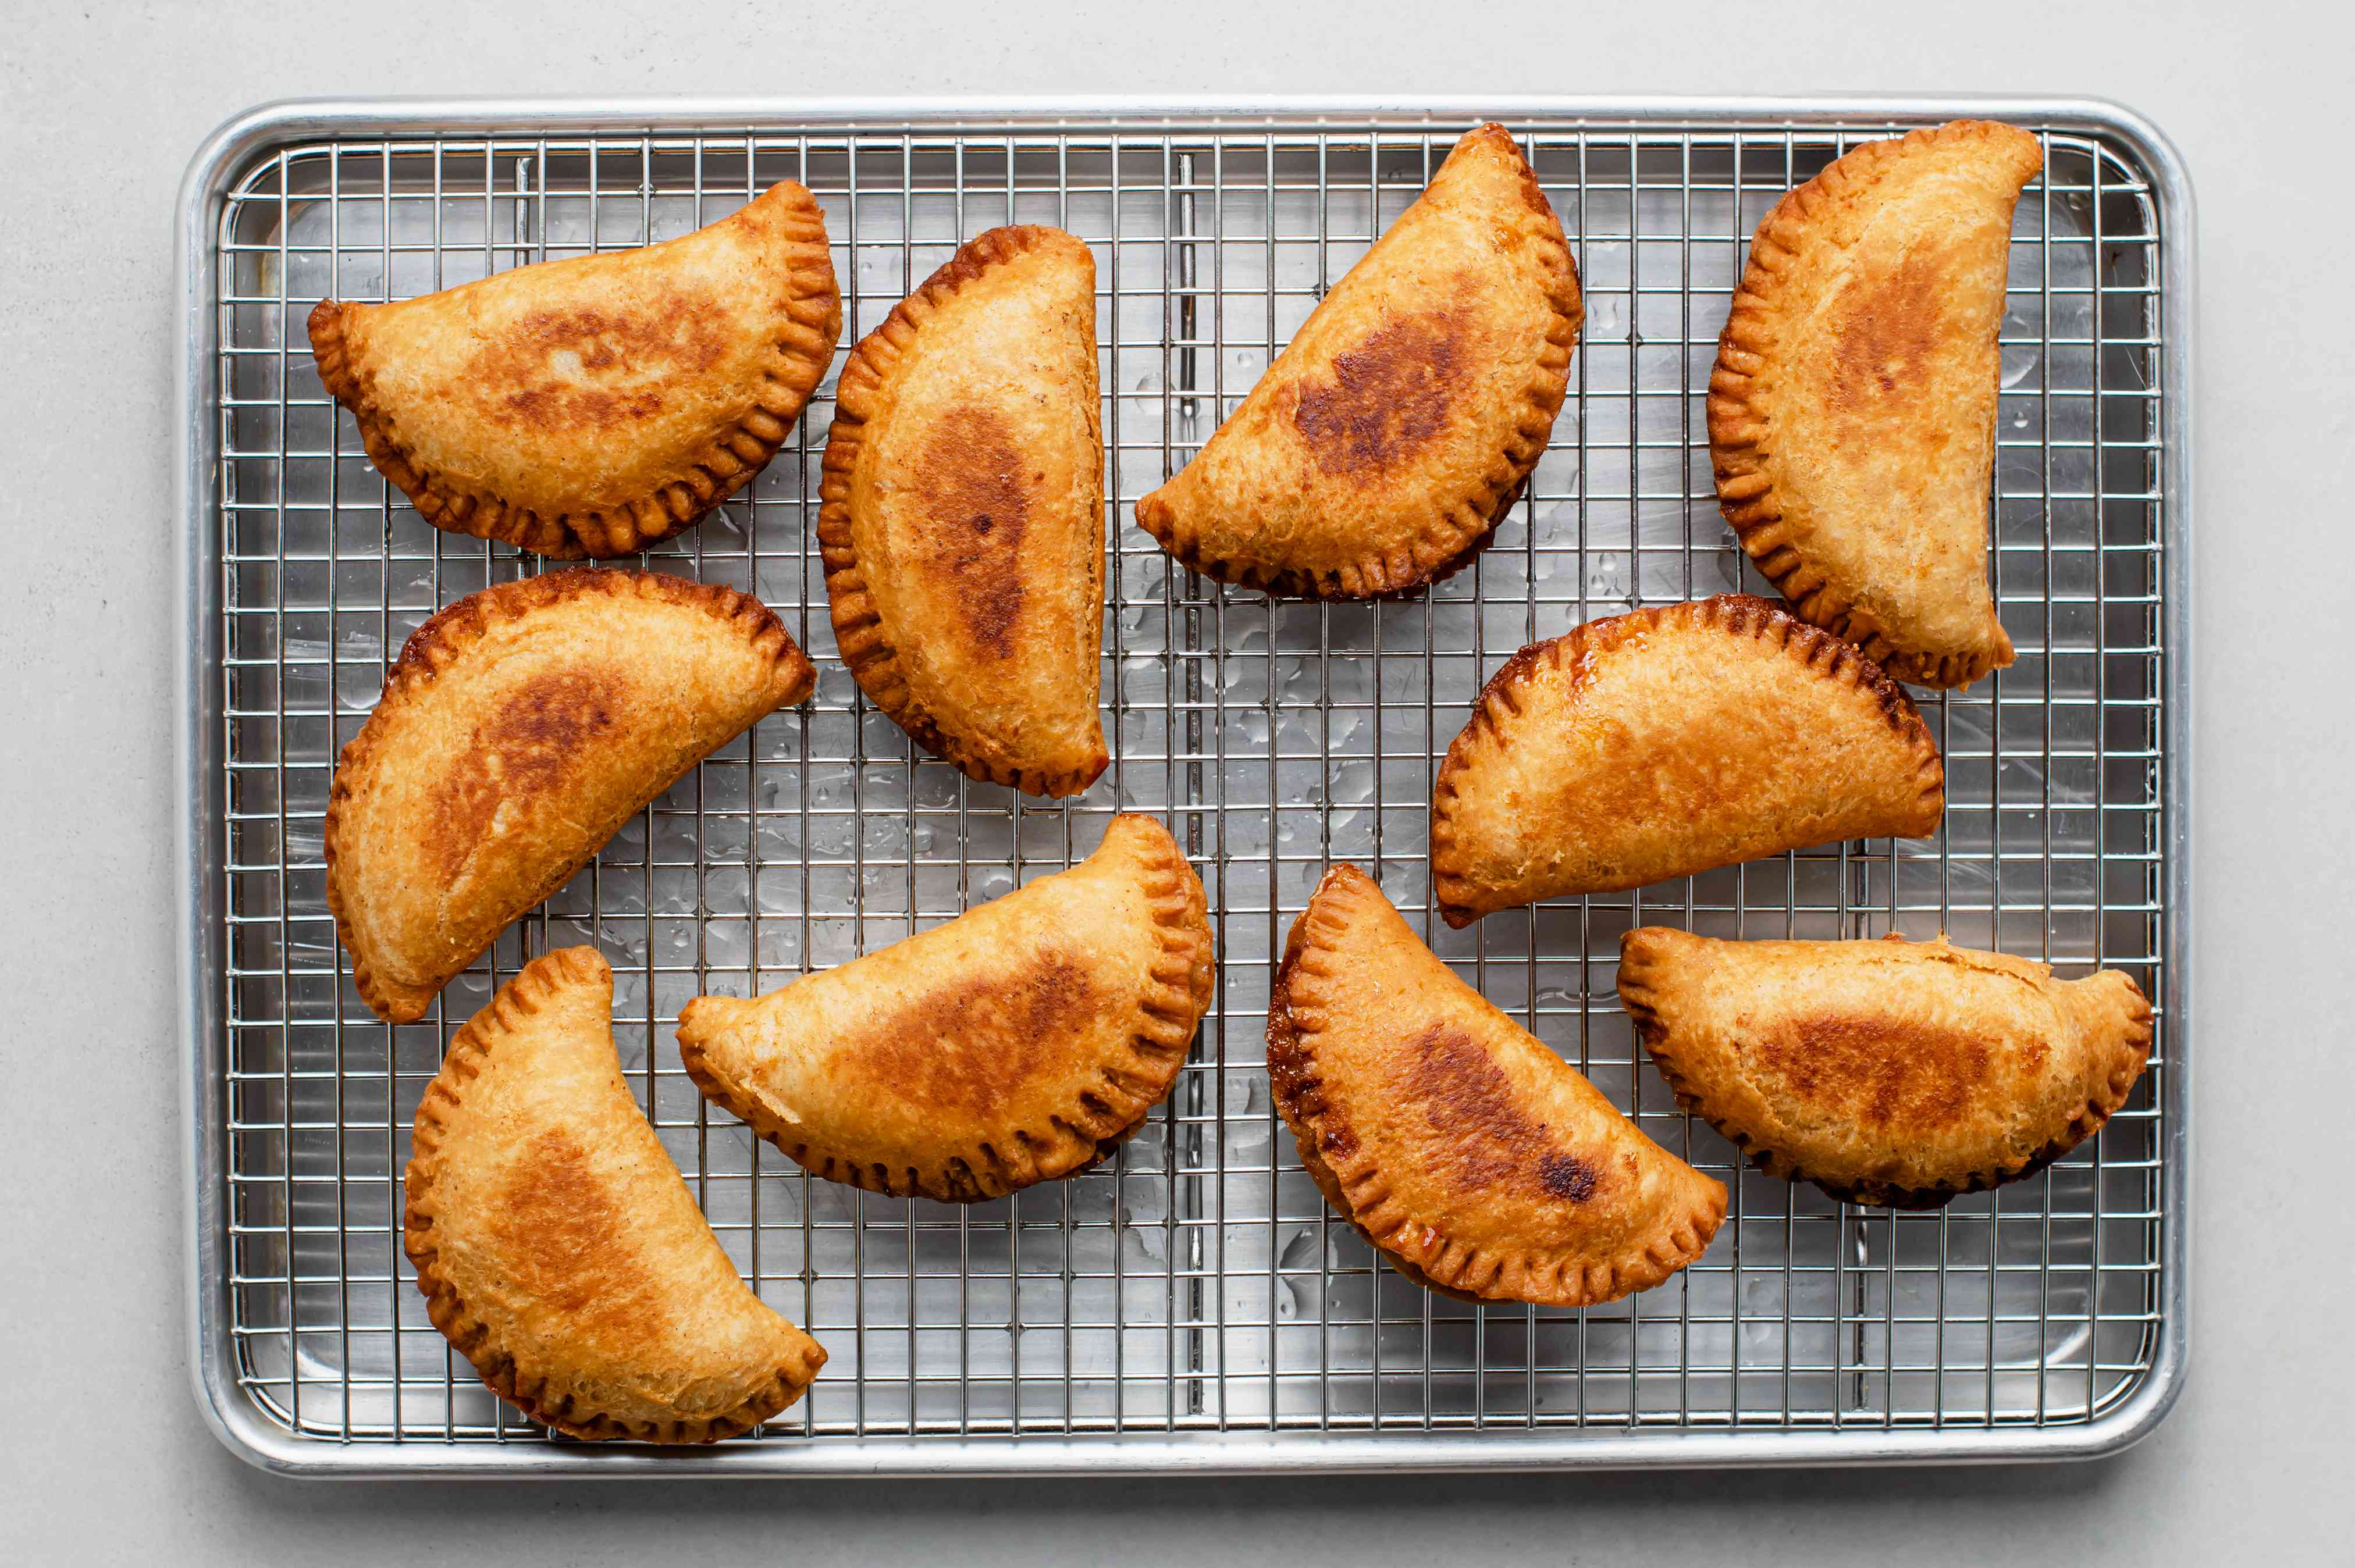 Abuela's Apple Empanadas on a wire cooling rack